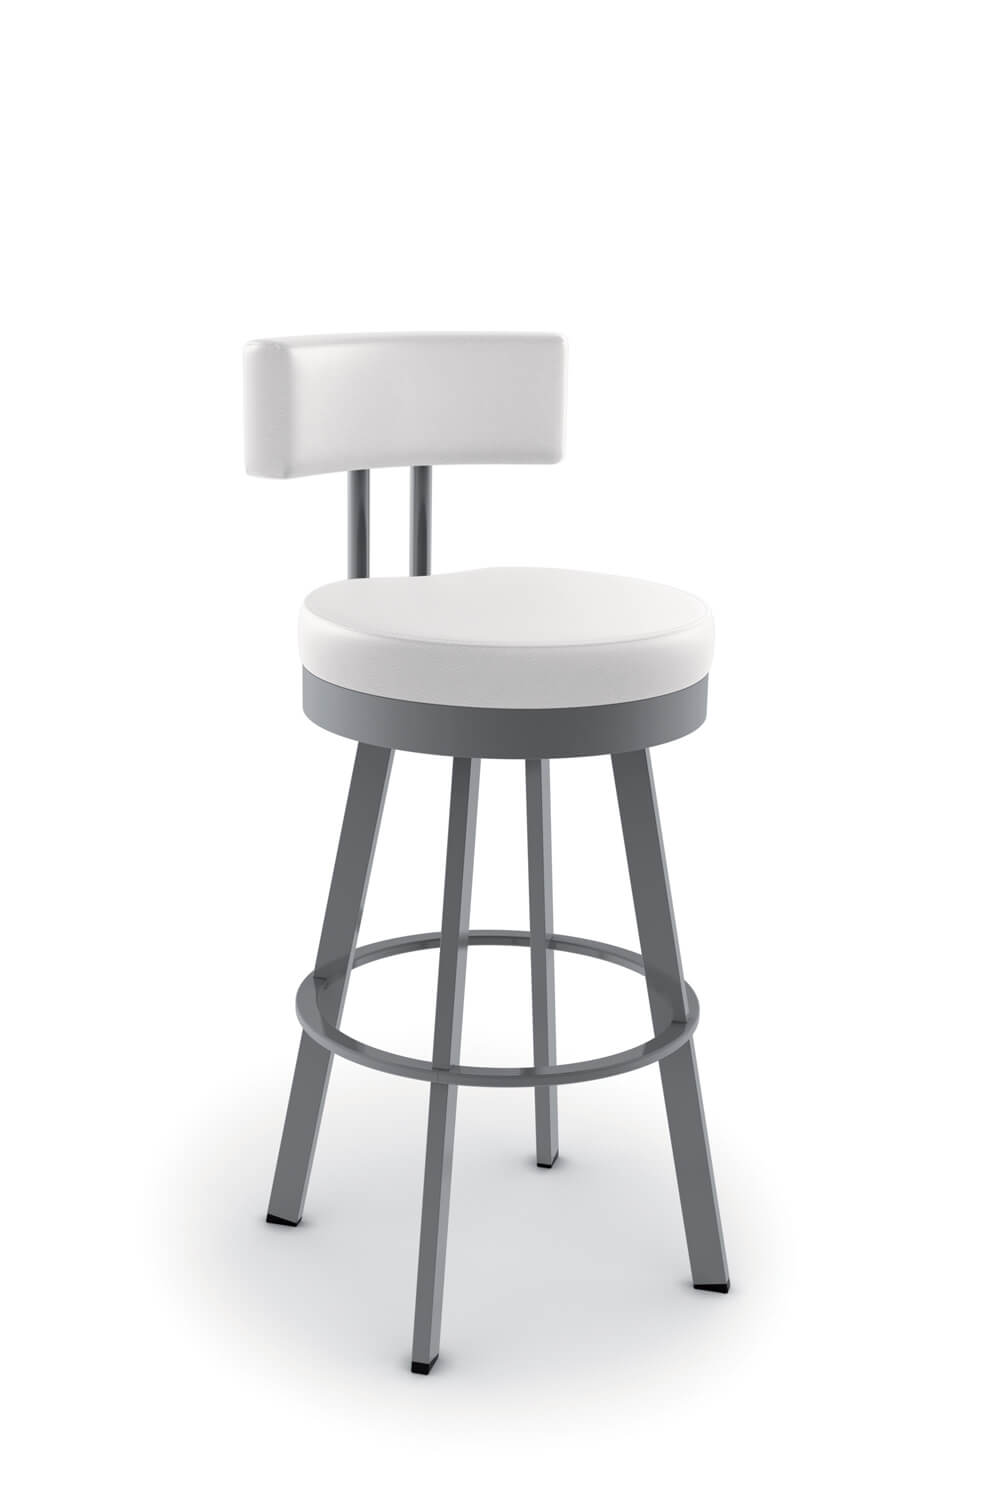 Wondrous Barry Swivel Stool Machost Co Dining Chair Design Ideas Machostcouk